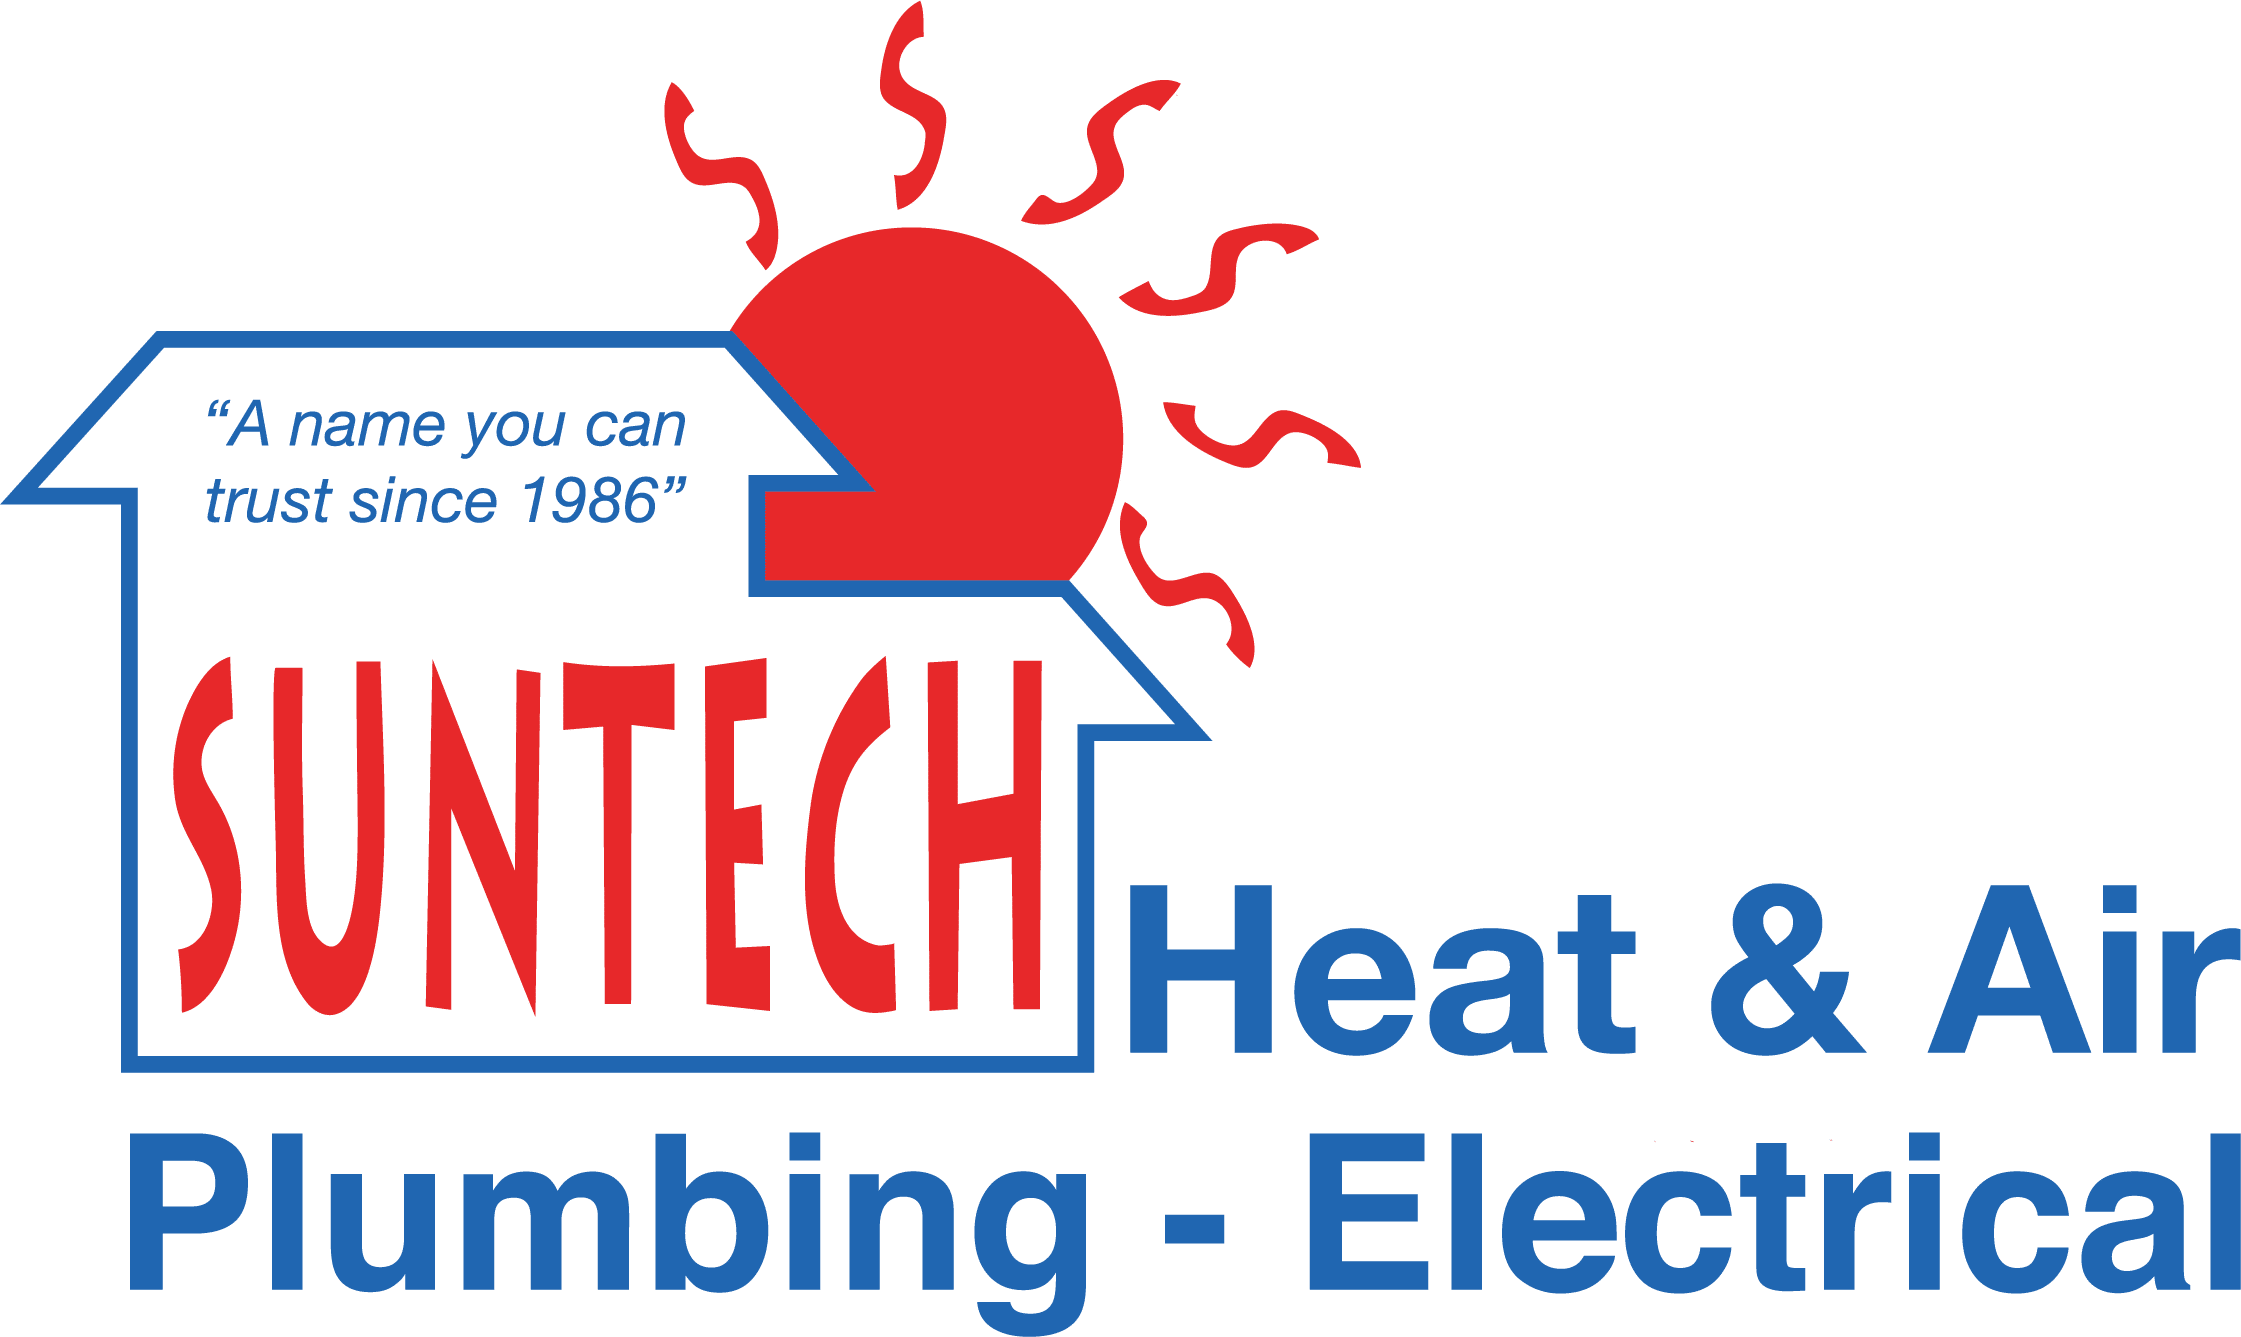 Co SunTech - Are you tired of seeing another OKC HVAC company at the top of Google?